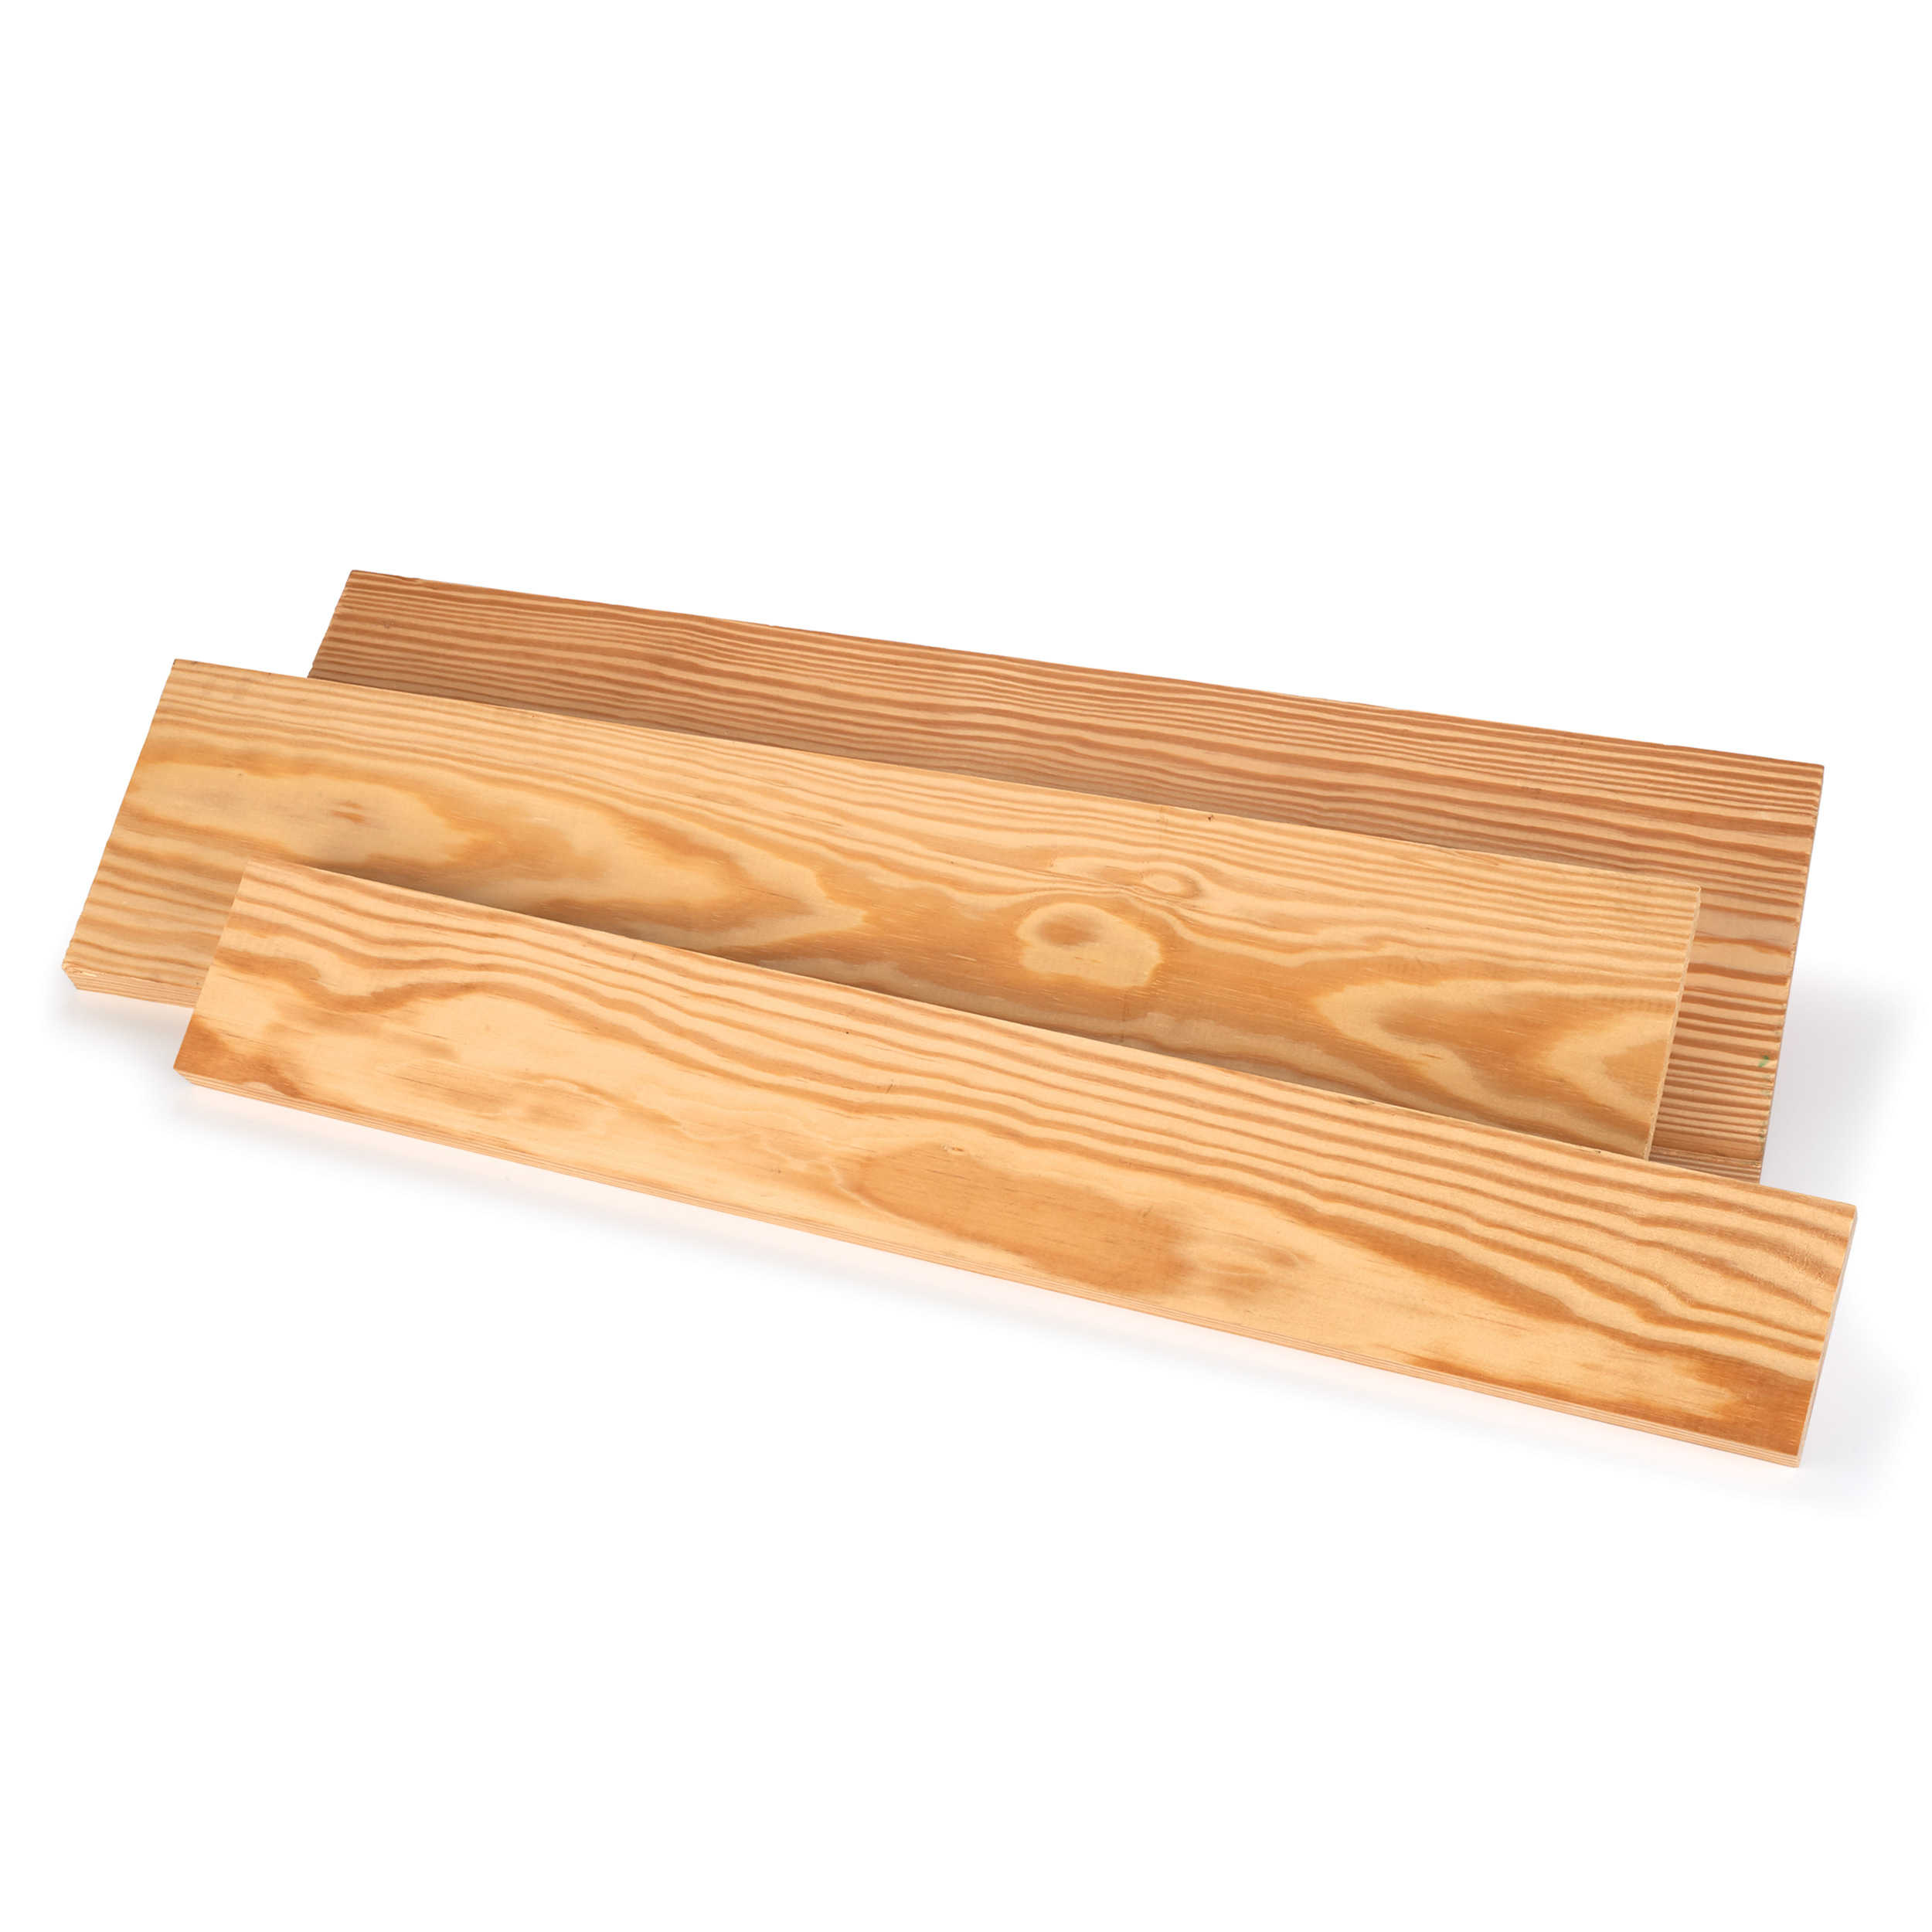 Woodcraft Woodshop Southern Yellow Pine, 3/4' x 3-1/2 x 24, Single Piece